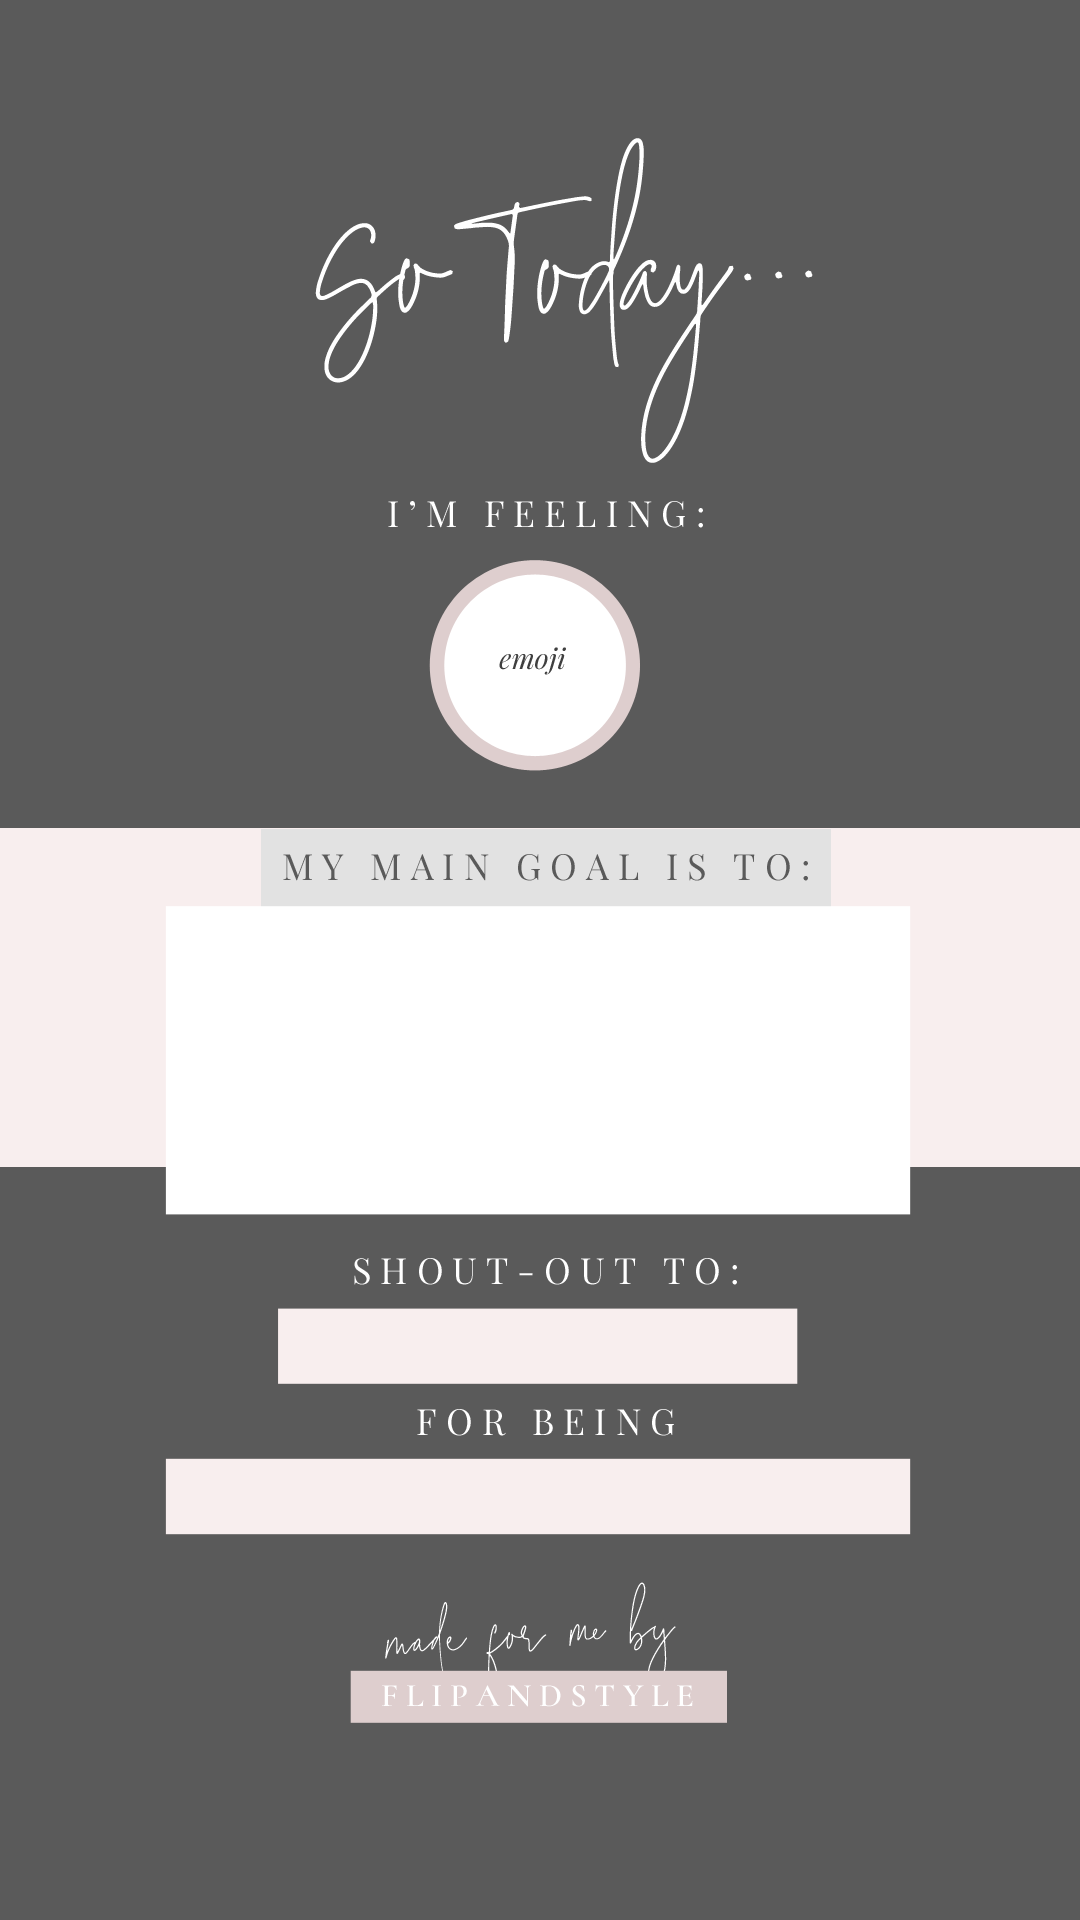 Pretty instagram story templates flip and style click on each template to see it full size save to your camera roll upload to your instagram story fill in and share ccuart Gallery